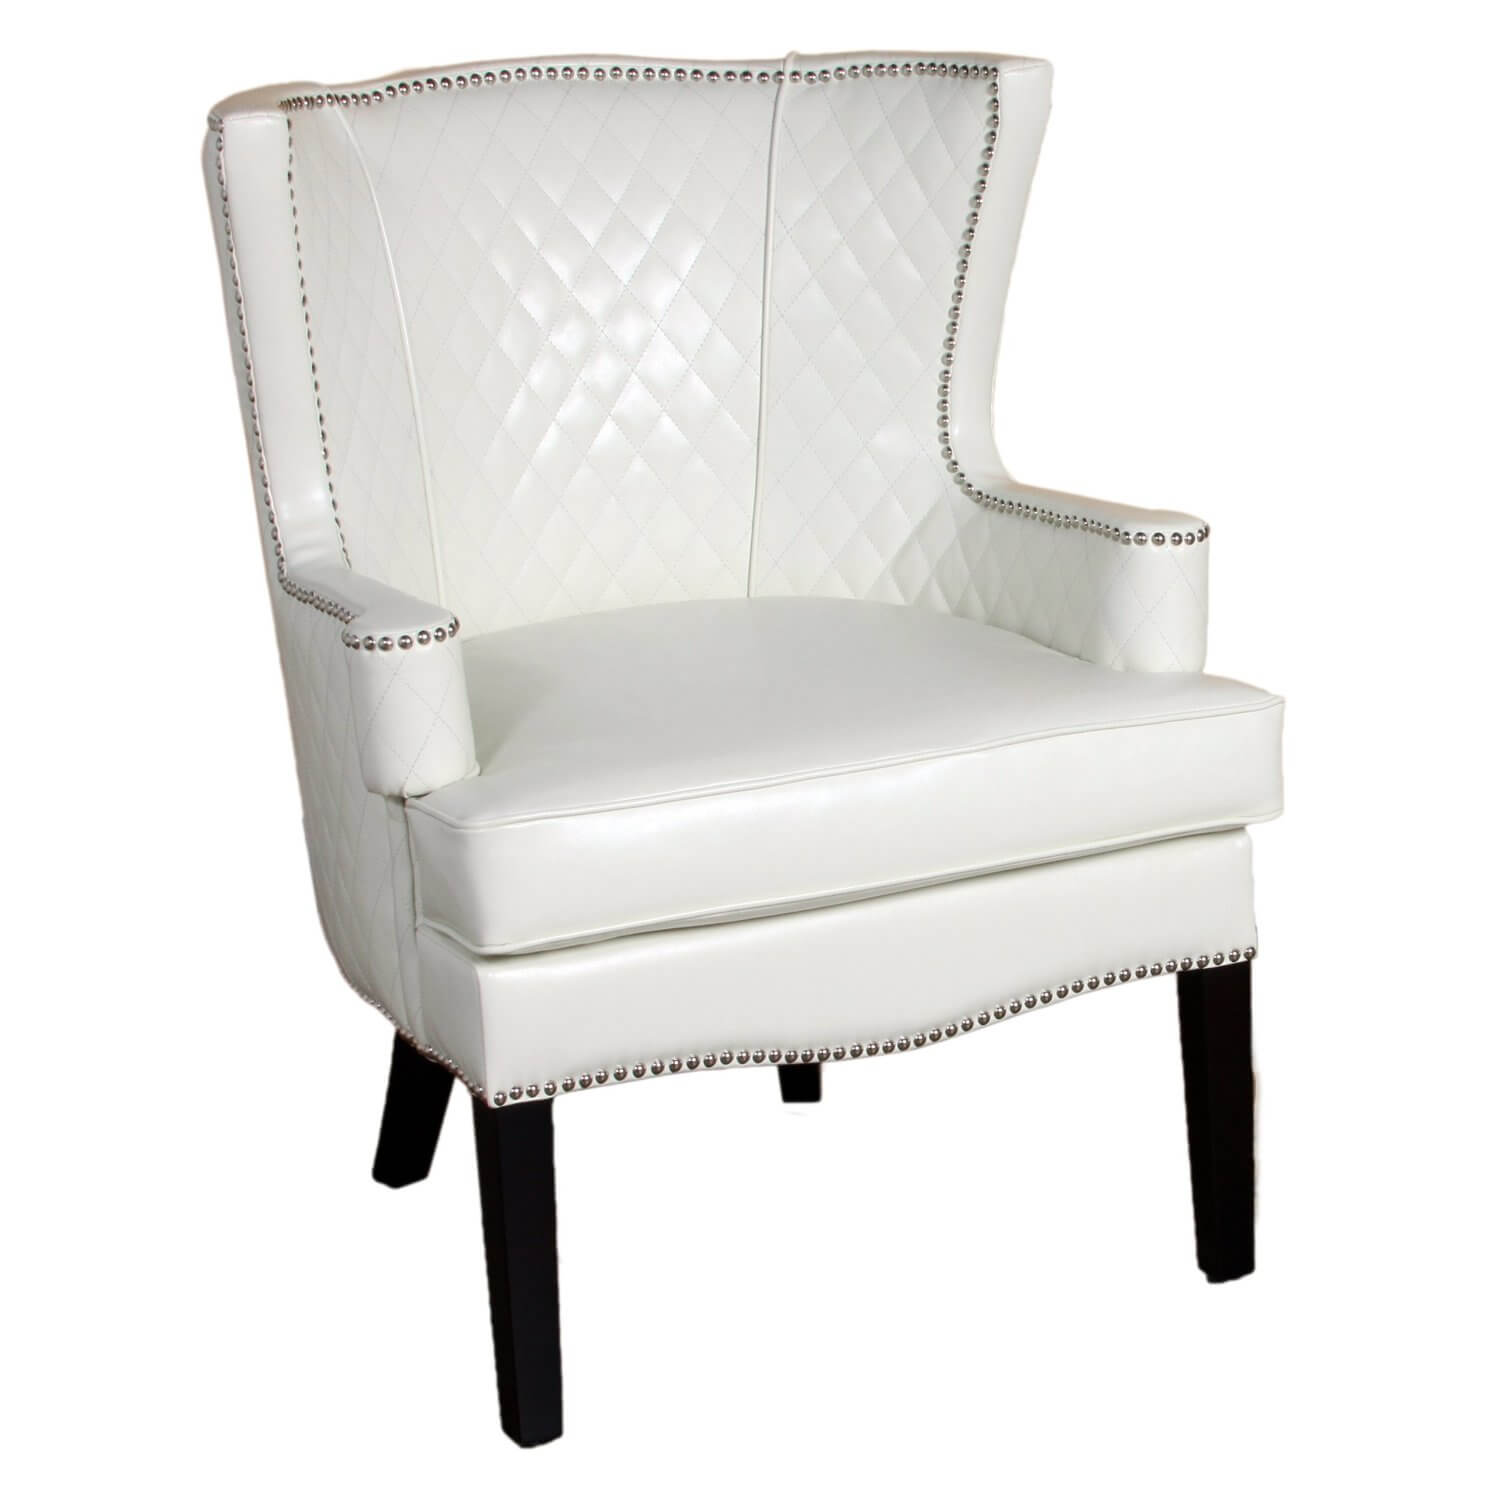 Another ivory toned chair, this quilted leather seat by BEST features wide seating, with padded cushion and backing for utmost comfort. The rounded back and arms make it livable in addition to aesthetically pleasing for any living room or office setting.